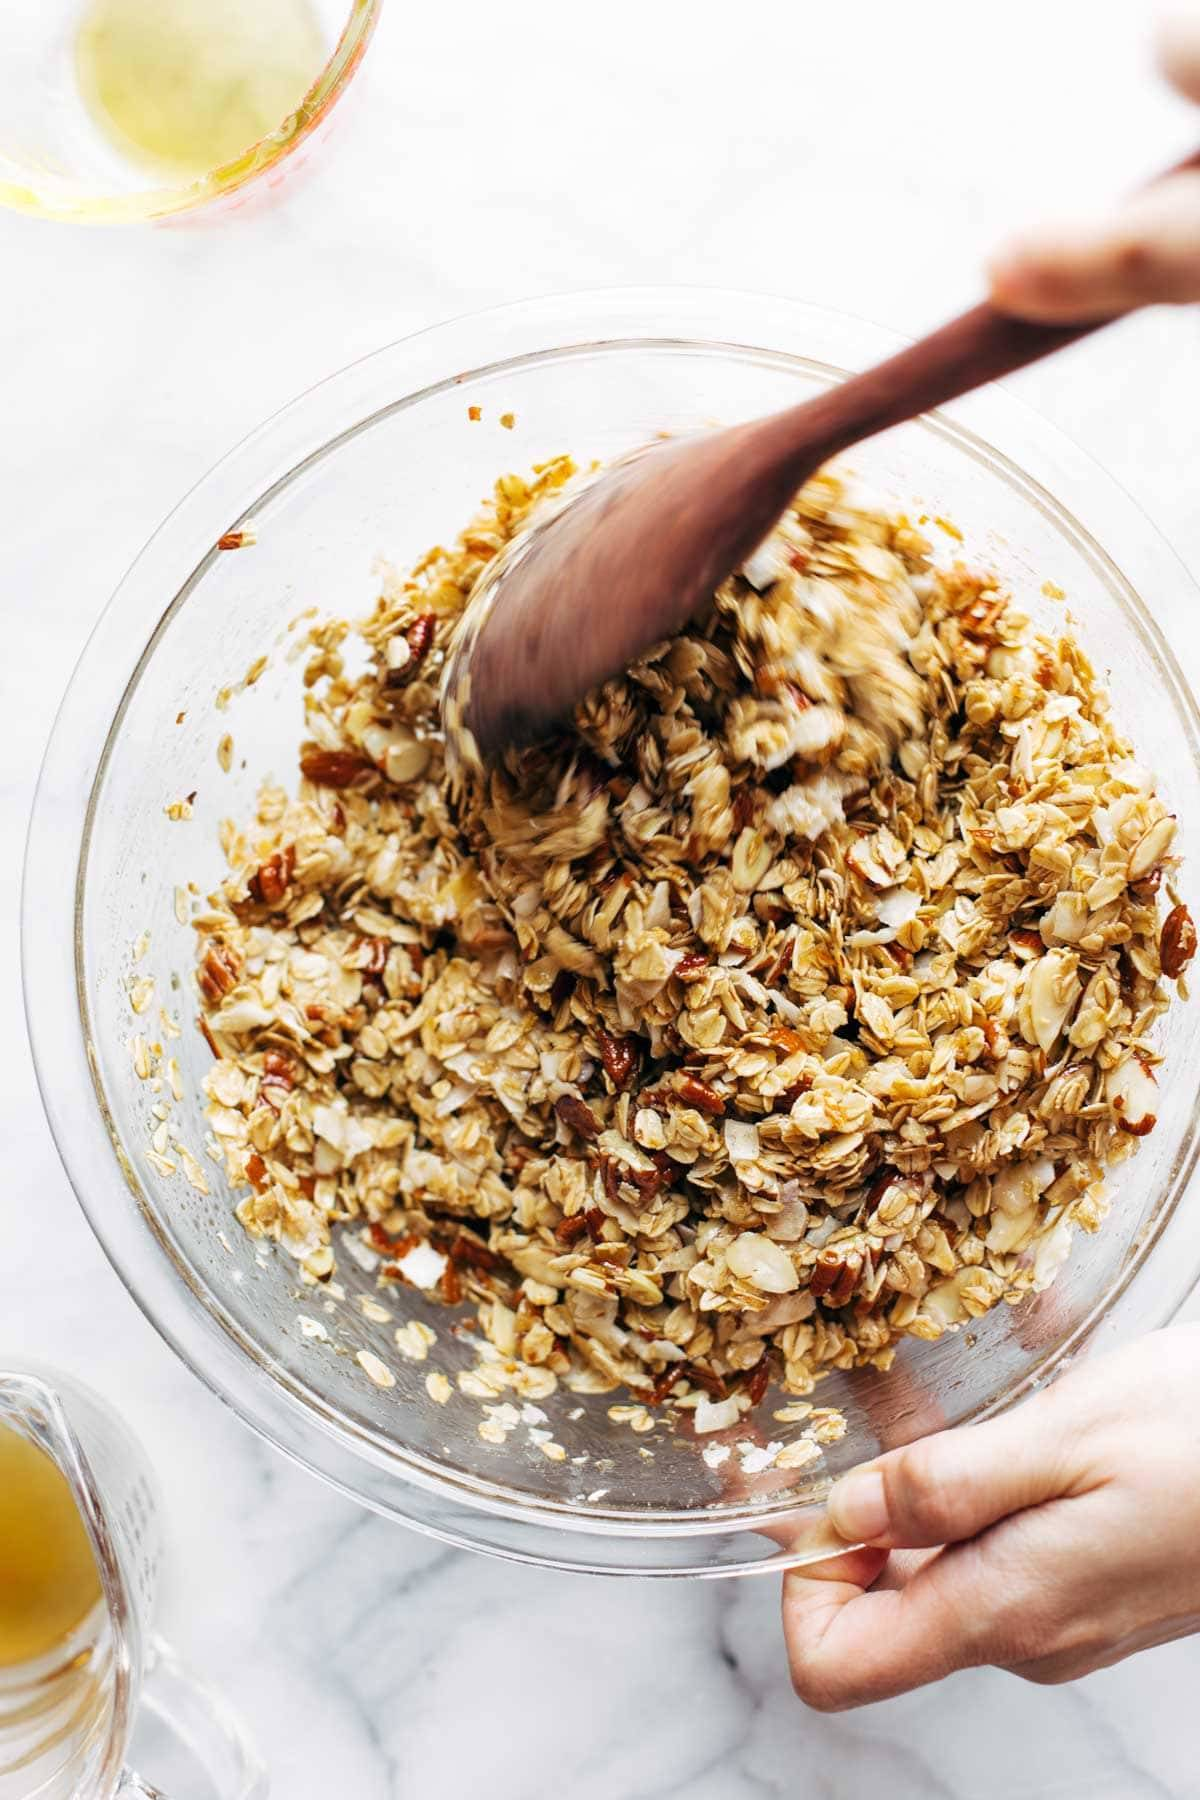 Mixing up granola ingredients with wooden spoon.